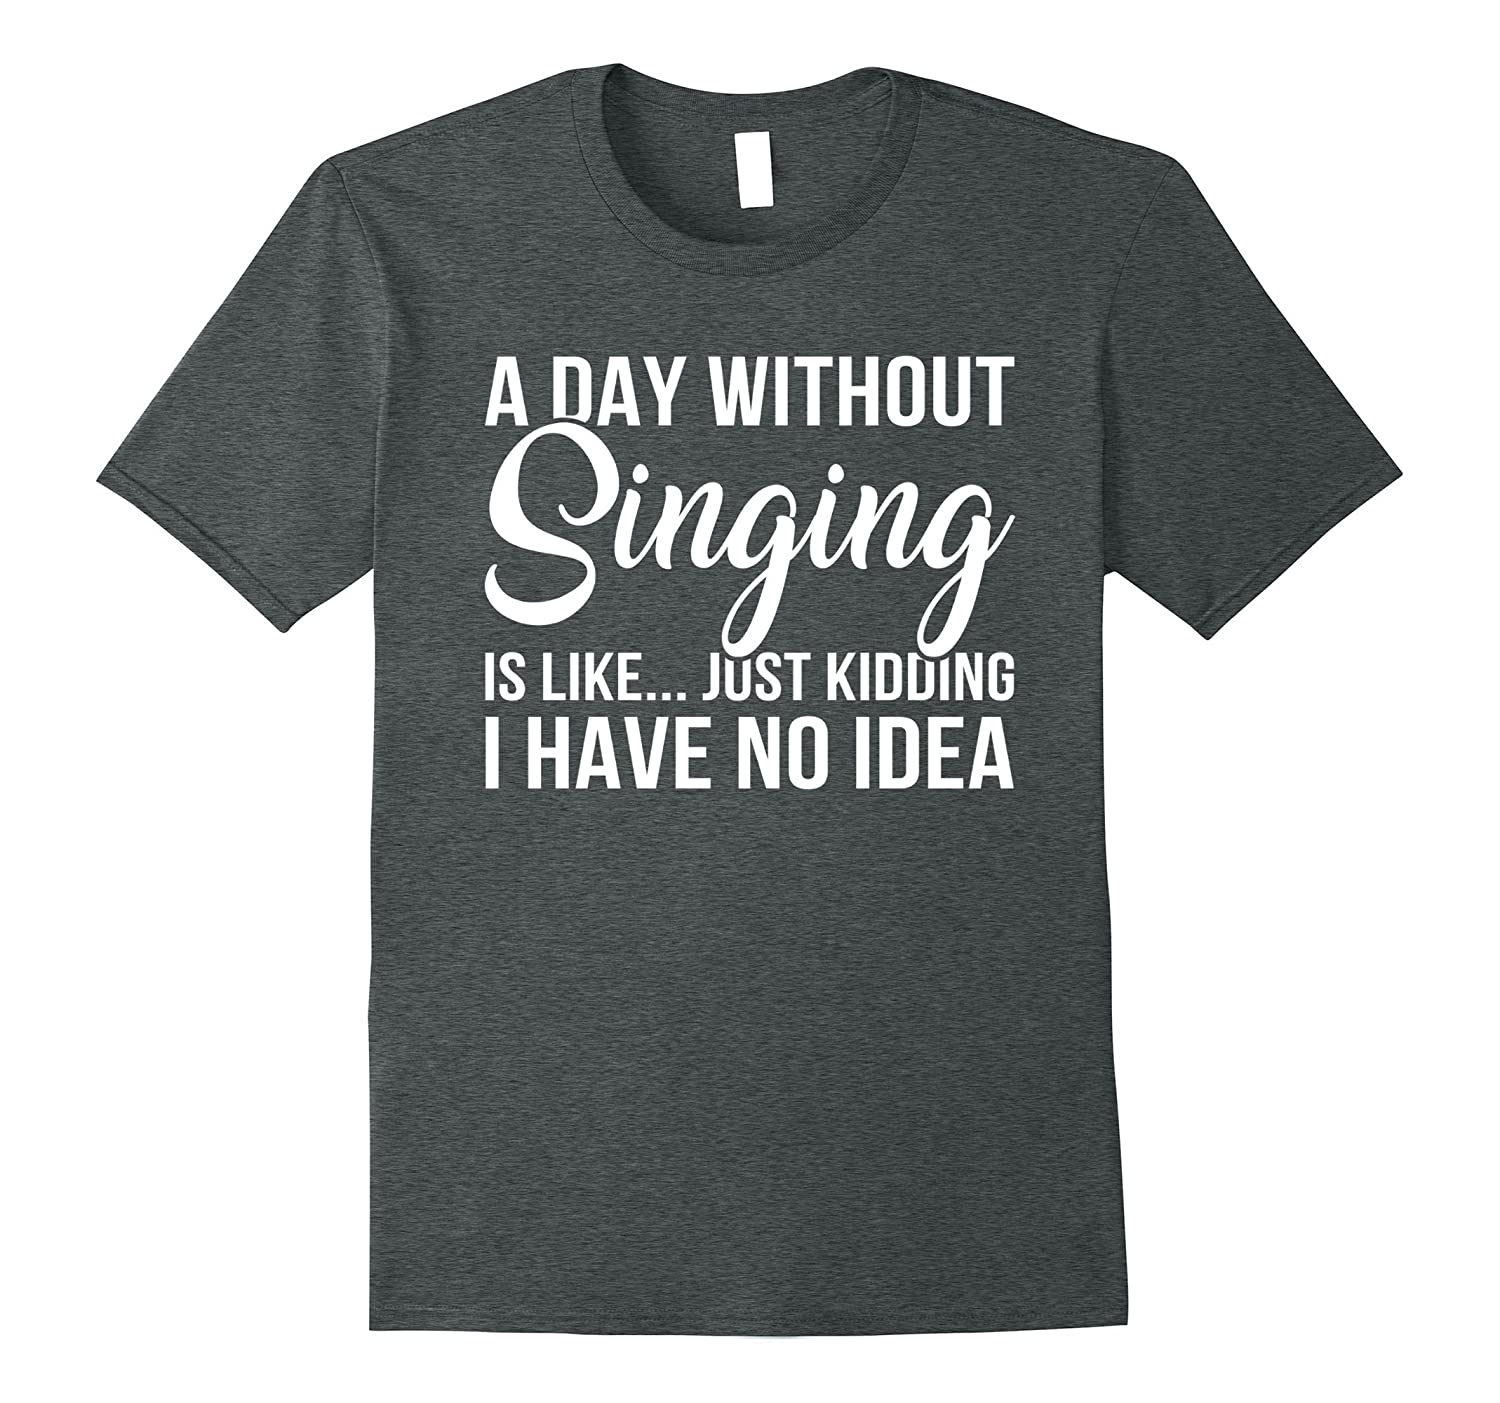 A DAY WITHOUT SINGING IS LIKE JUST KIDDING I HAVE NO IDEA-Art